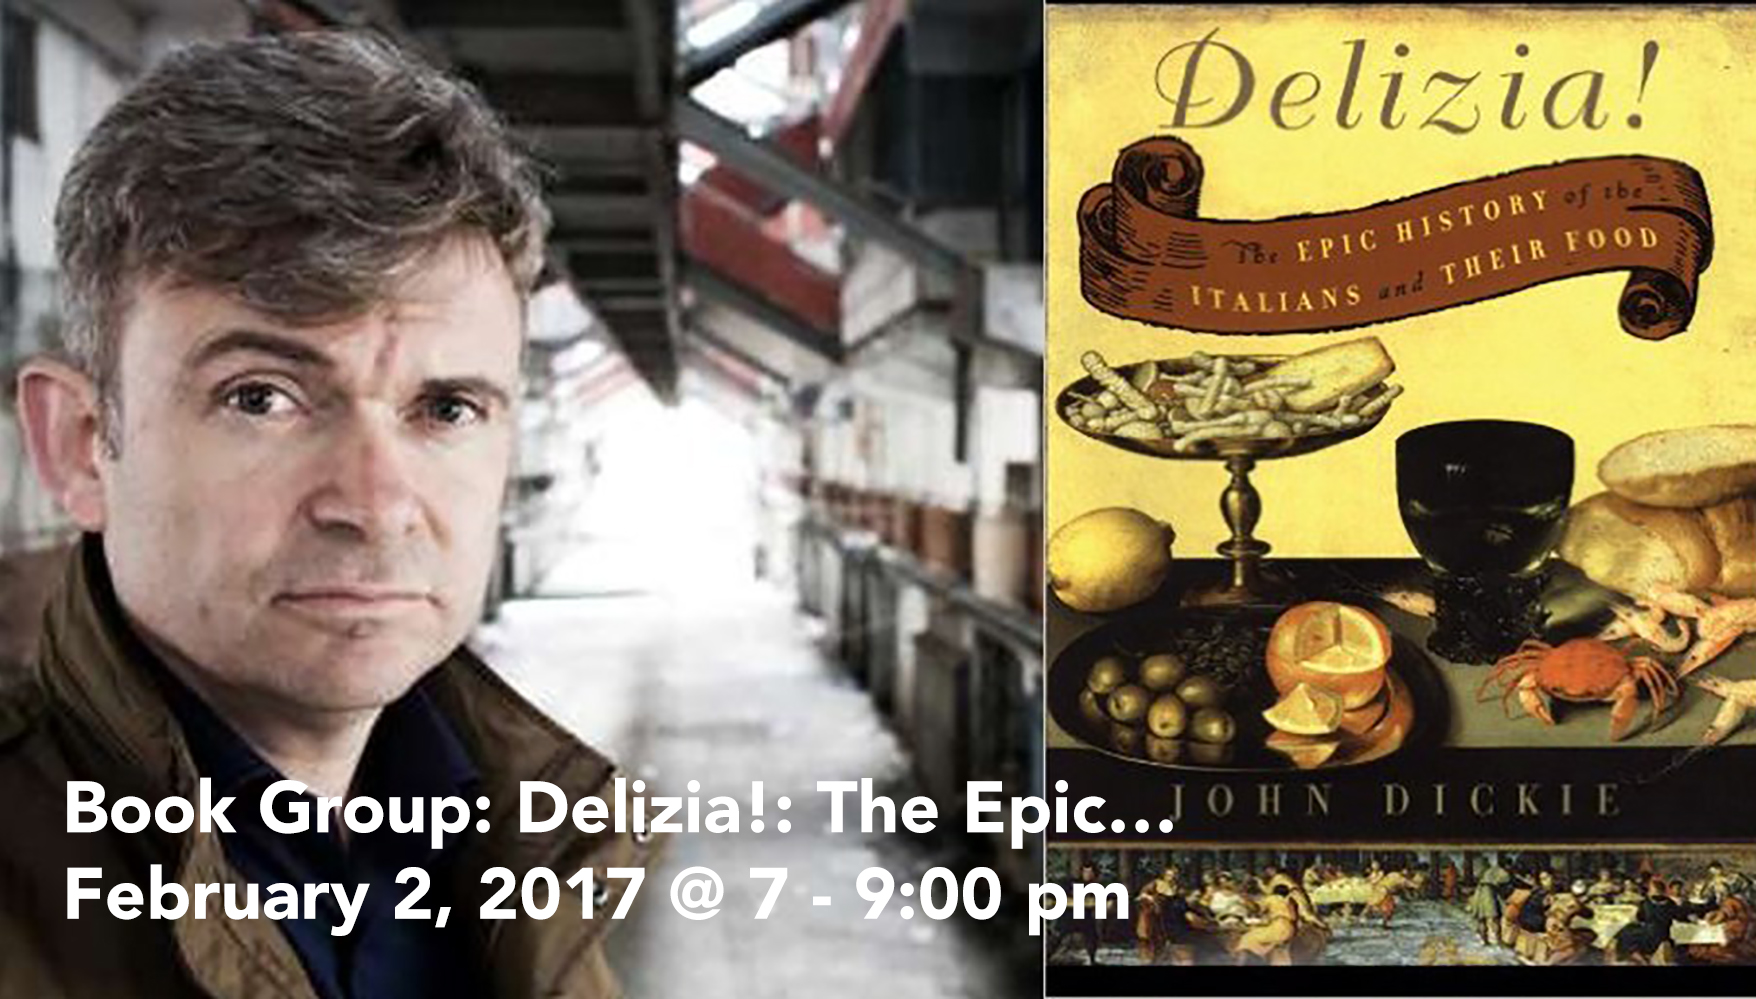 Book Group: Delizia!: The Epic History of the Italians and Their Food February 2, 2017 @ 7:00 pm - 9:00 pm